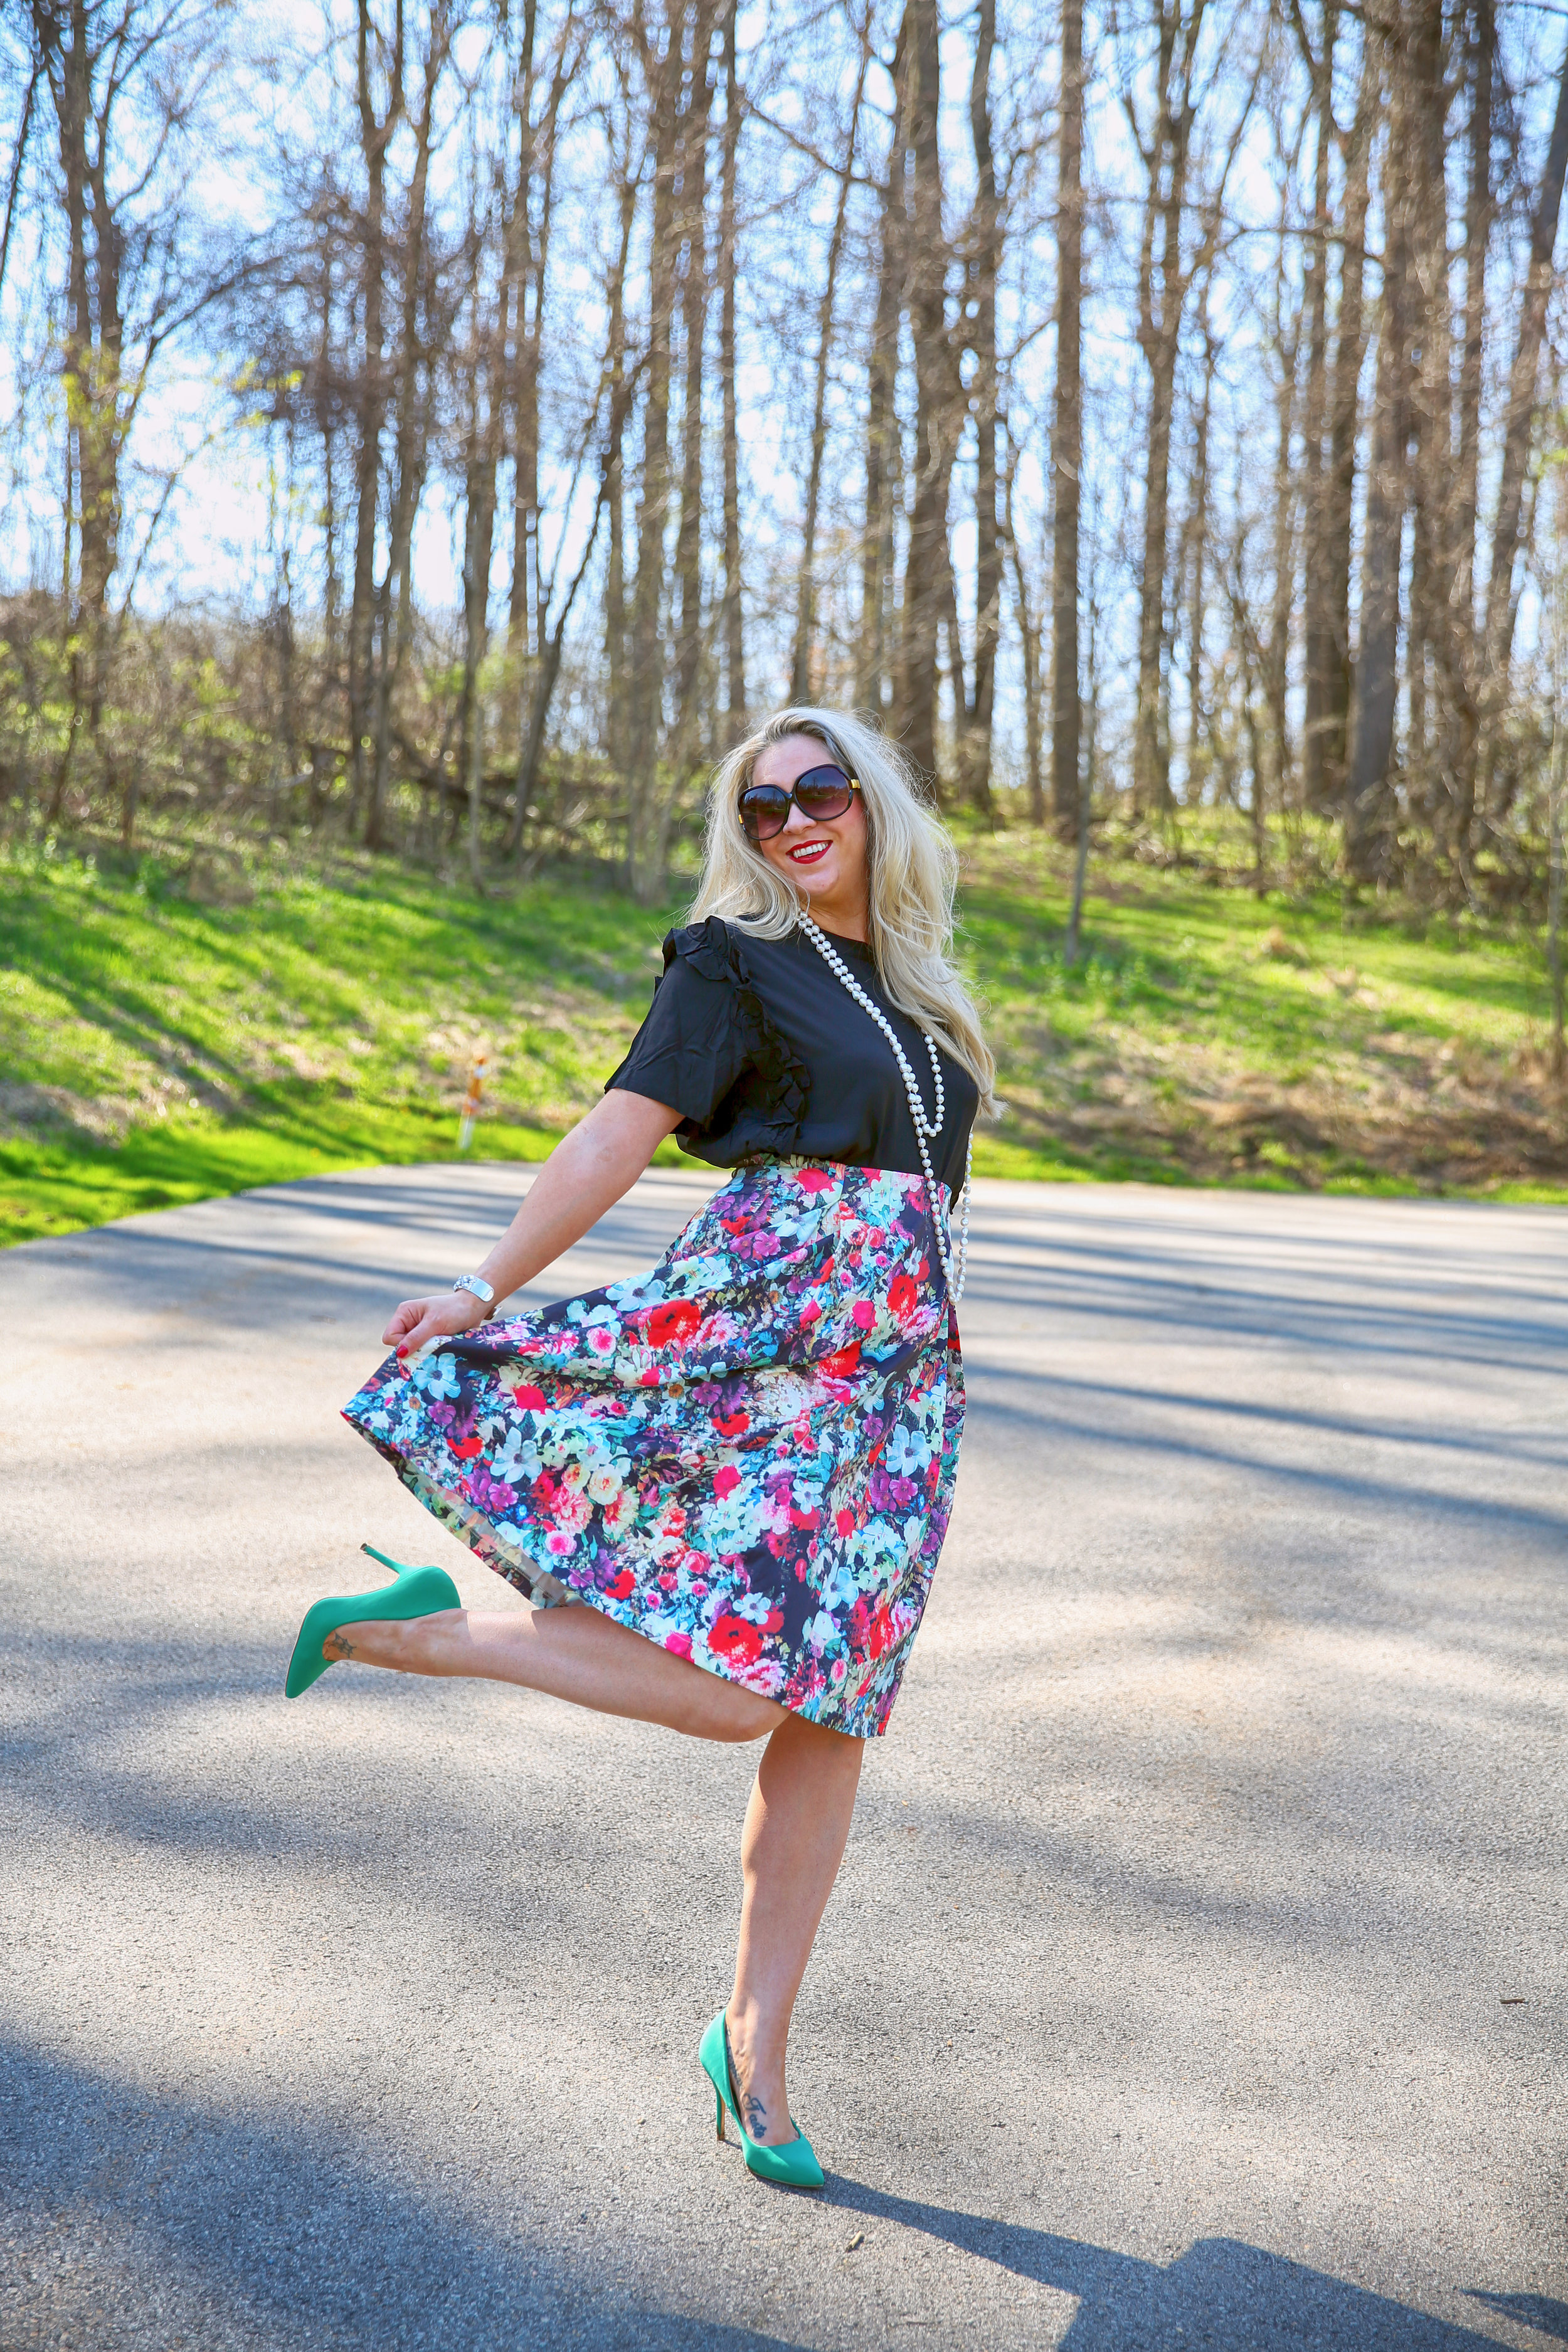 Top: https://www.everlyoak.com/collections/blouses/products/ivy-blouse  Skirt: https://www.everlyoak.com/collections/skirts/products/fiona-floral-skirt